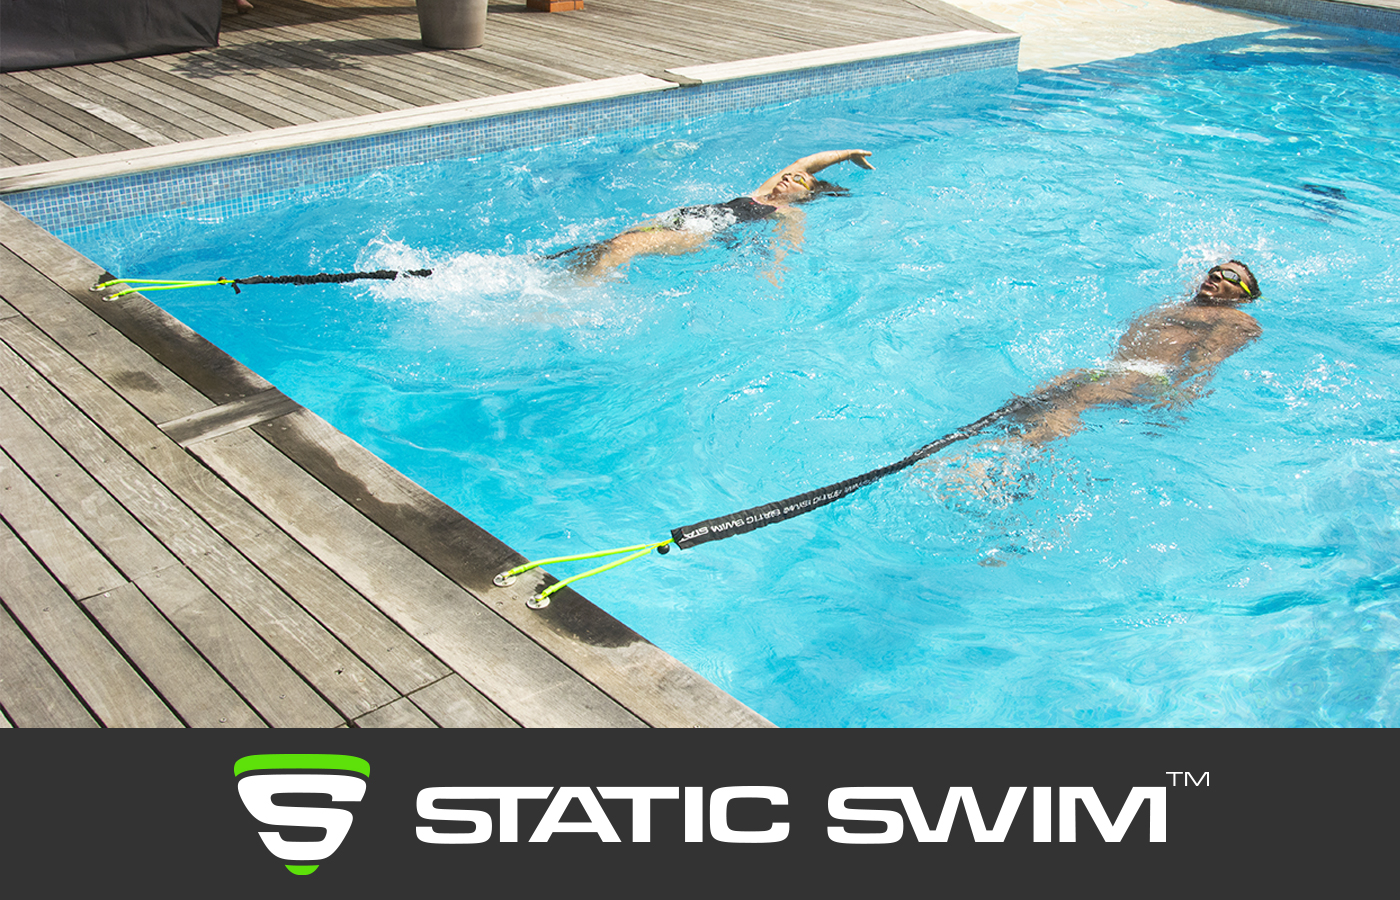 STATIC SWIM™ exercices dos crawlé